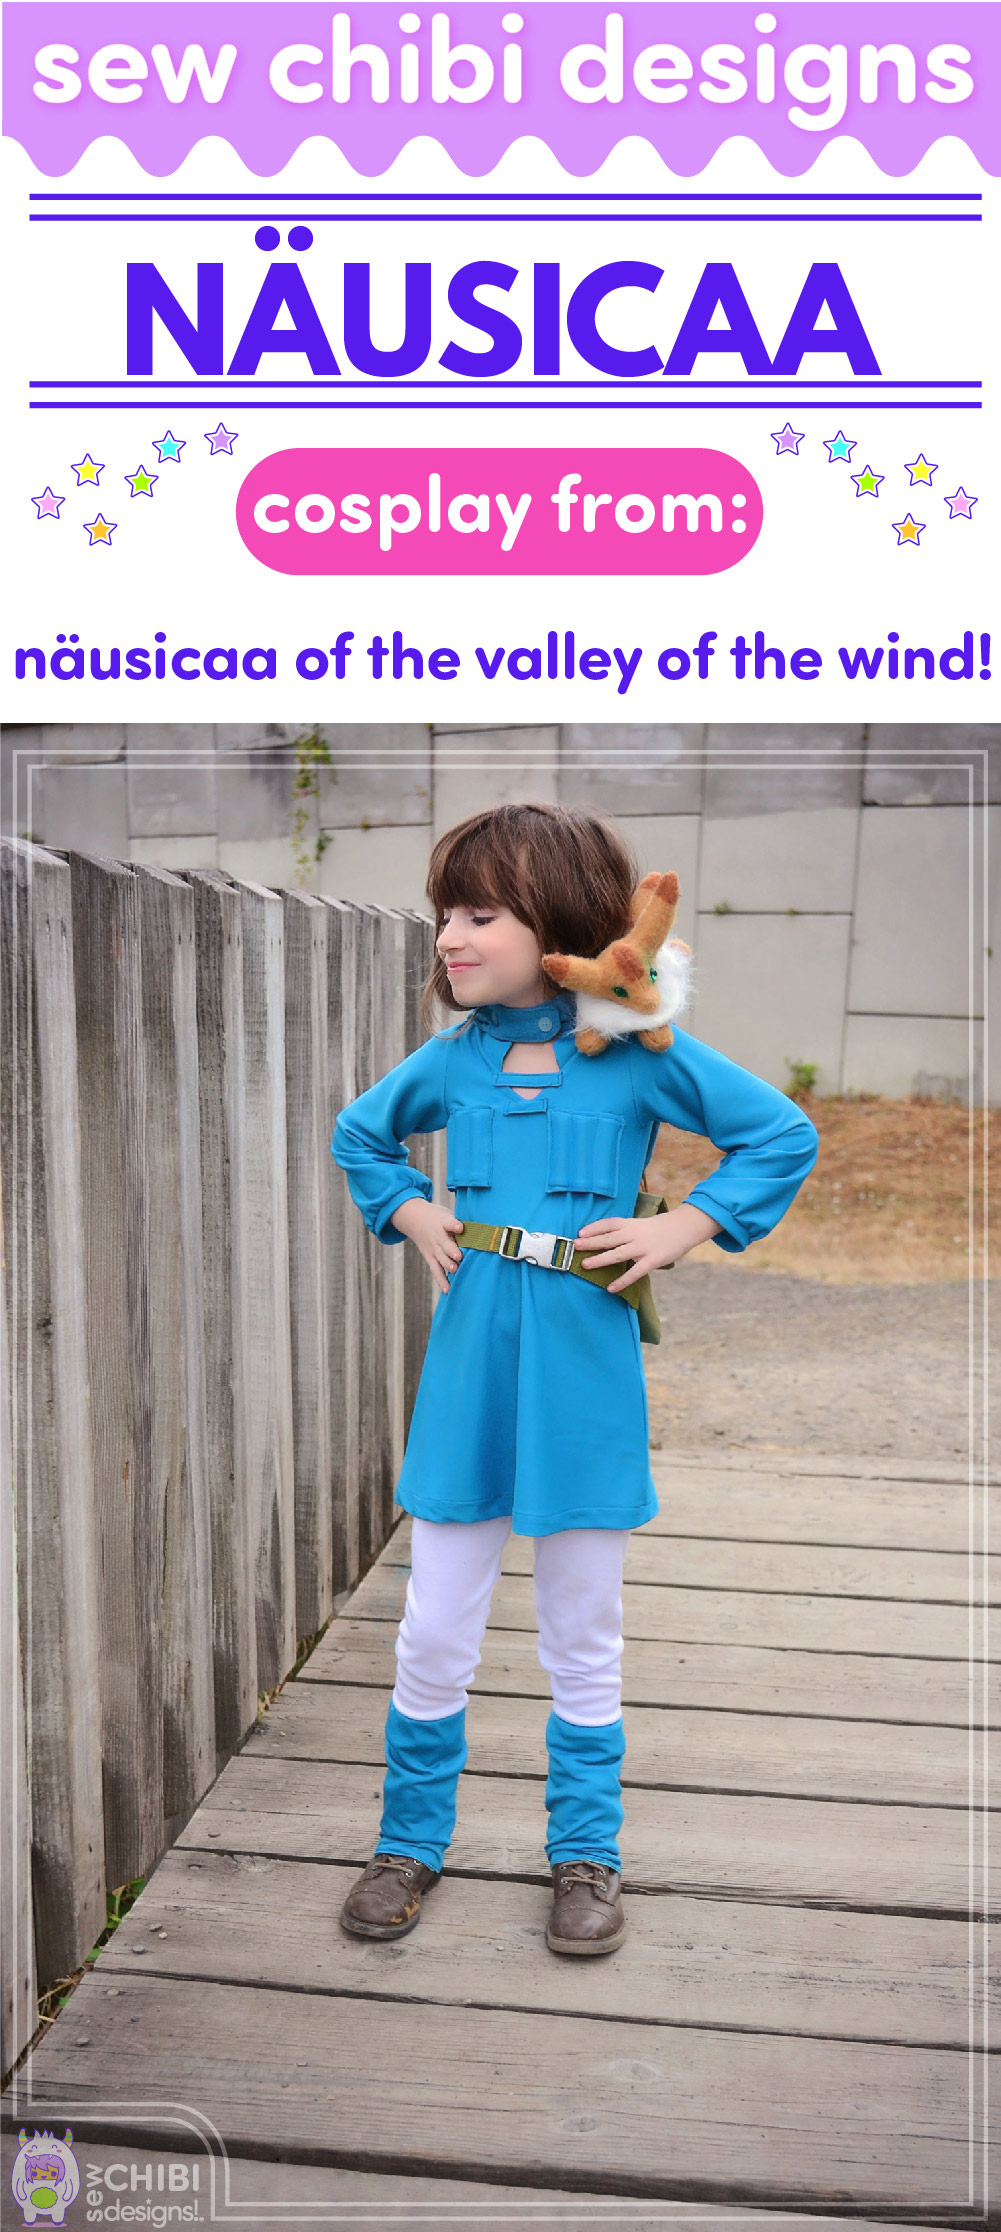 Nausicaa chibi cosplay from Nausicaa of the Valley of the Wind sewn by Sew Chibi Designs for Sew Geeky